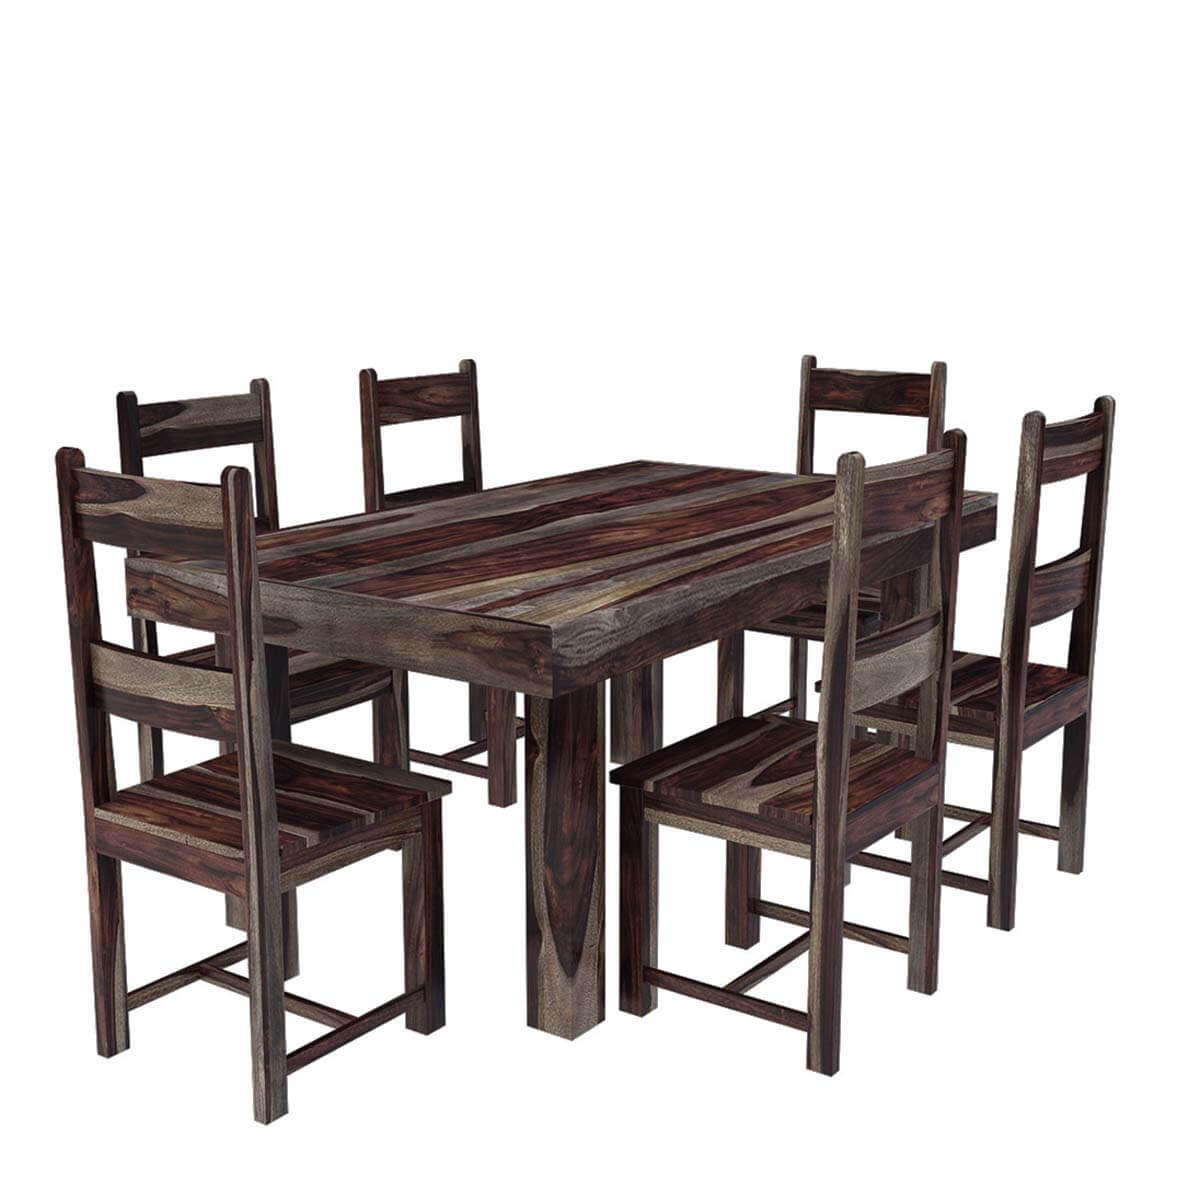 Modern Wooden Dining Room Chairs Frisco Modern Solid Wood Casual Rustic Dining Room Table